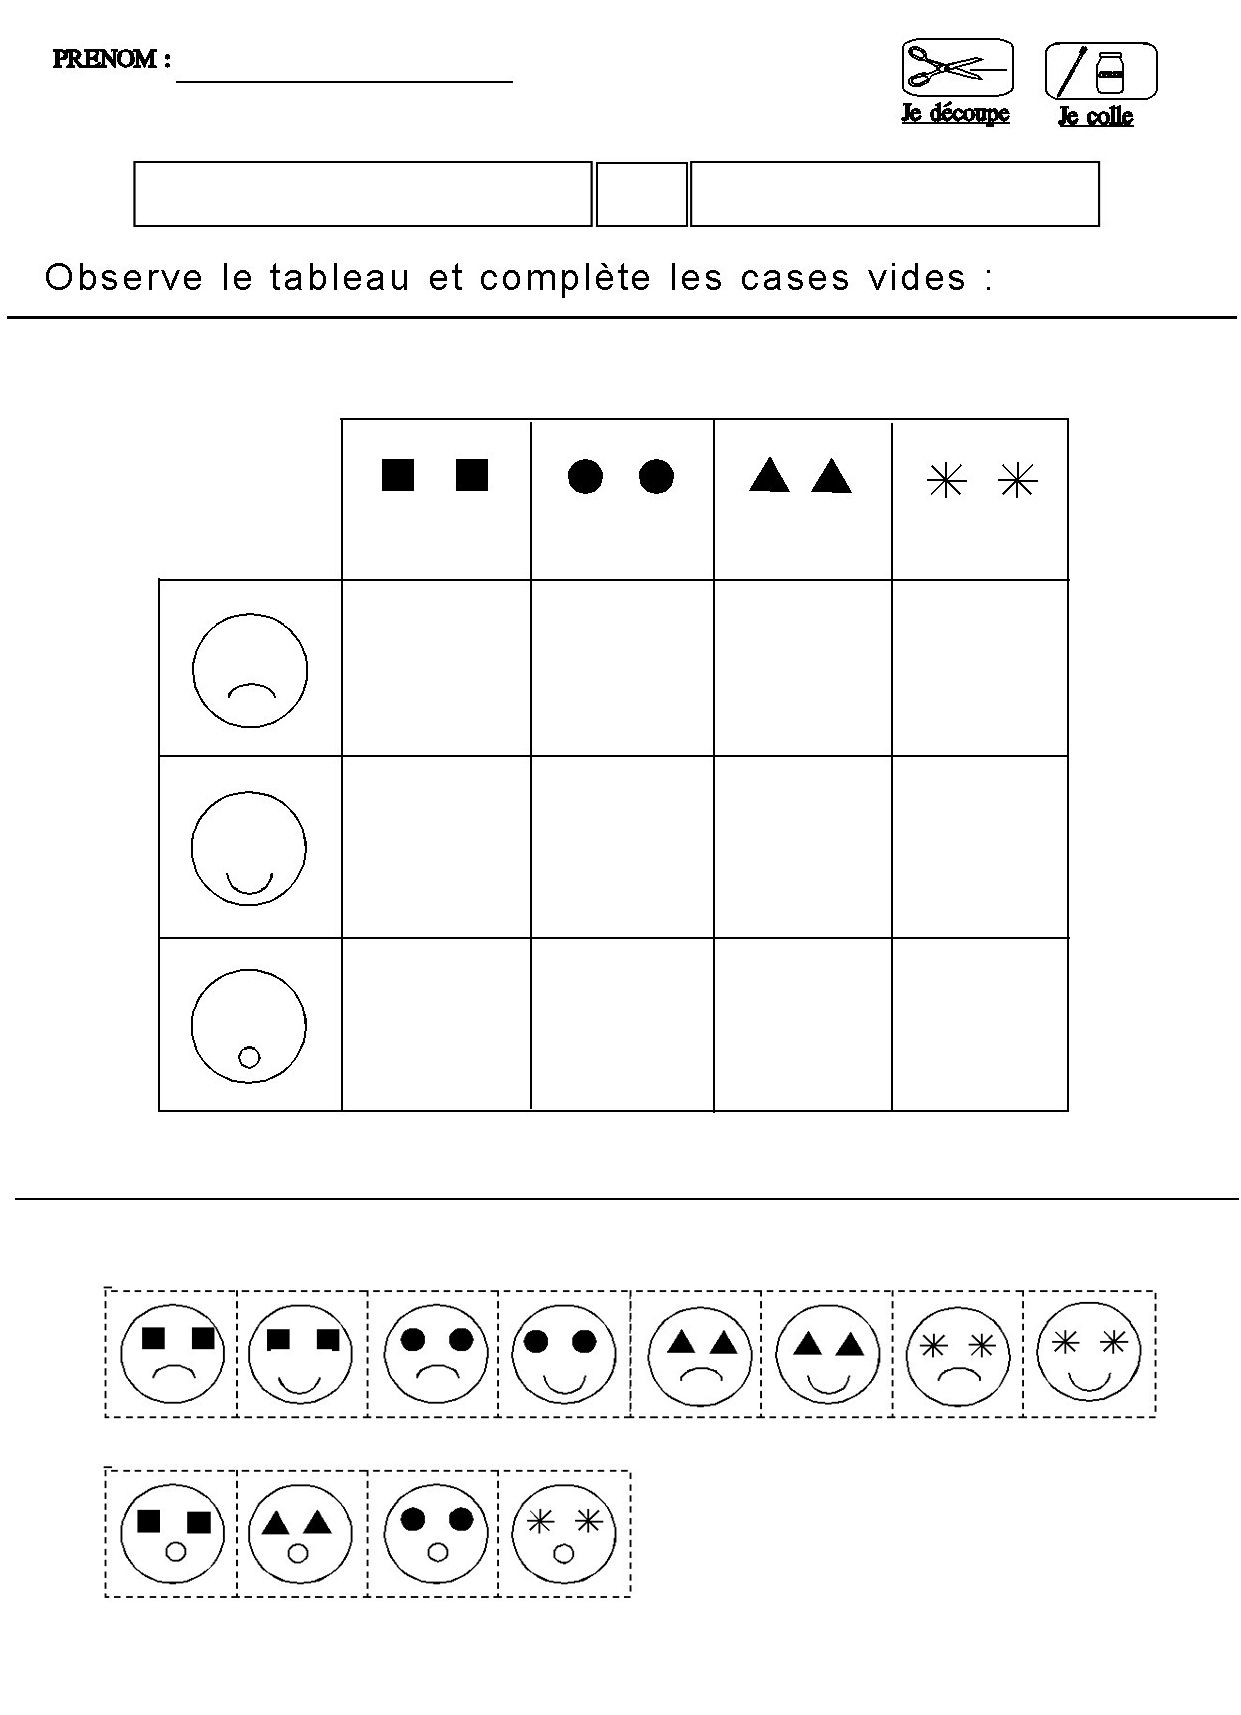 Tableau Double Entrees Pour Maternelle Moyenne Section tout Exercice De Moyenne Section